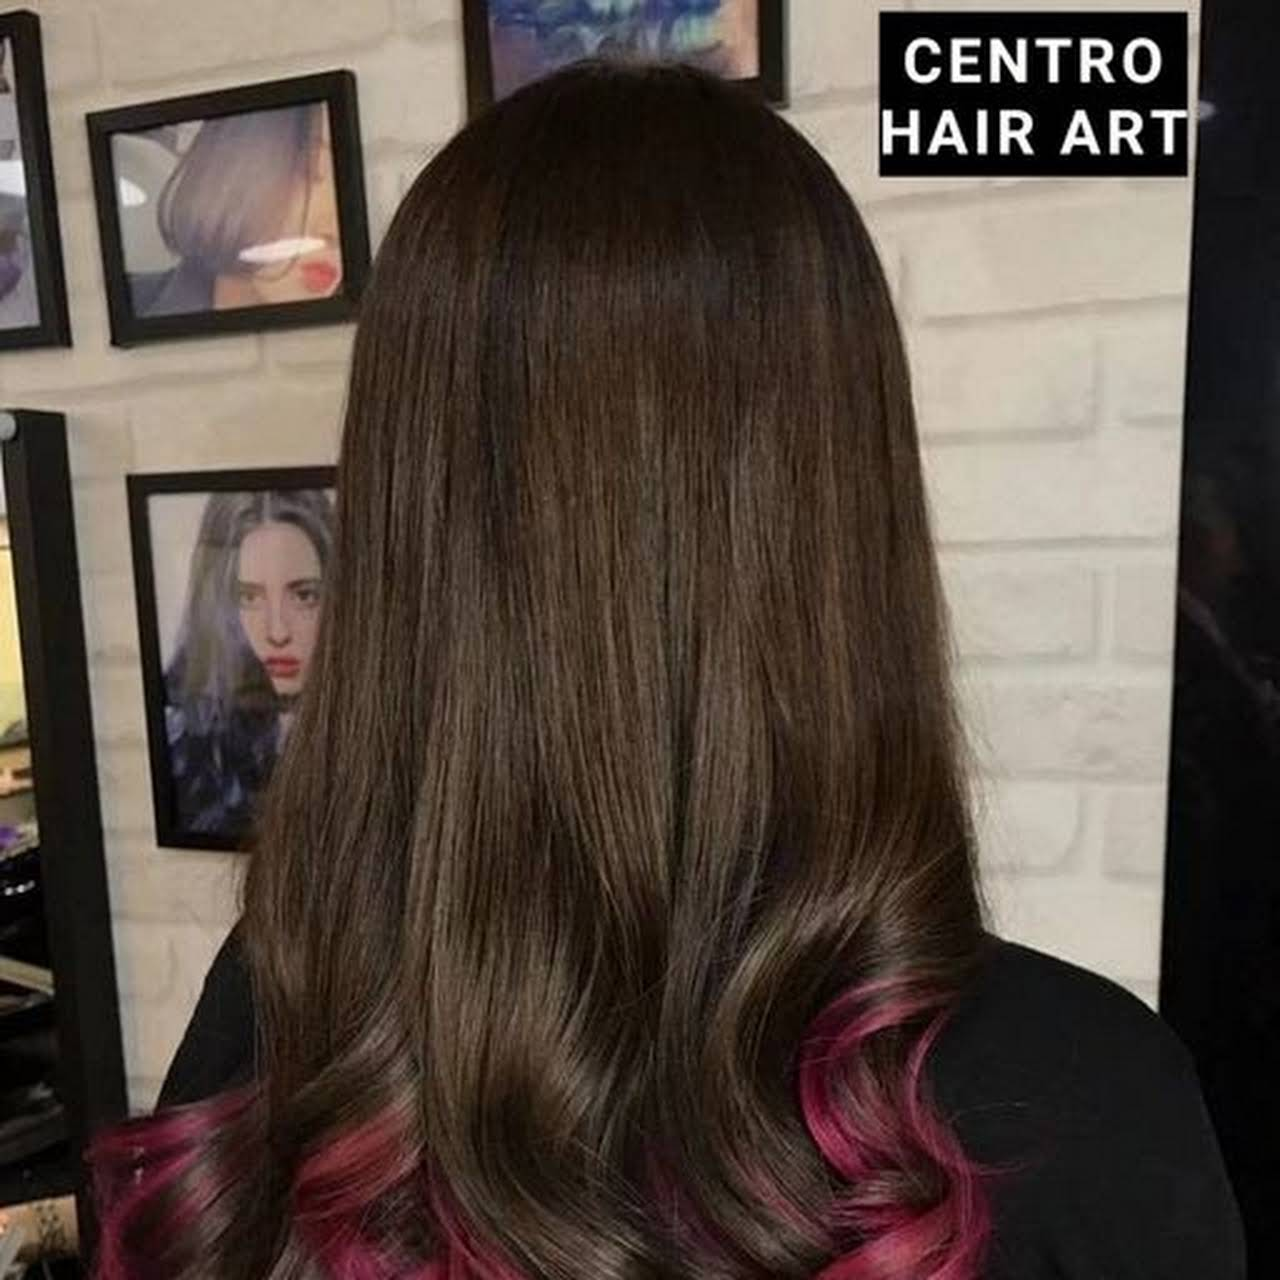 Centro Hair Art Hairdresser